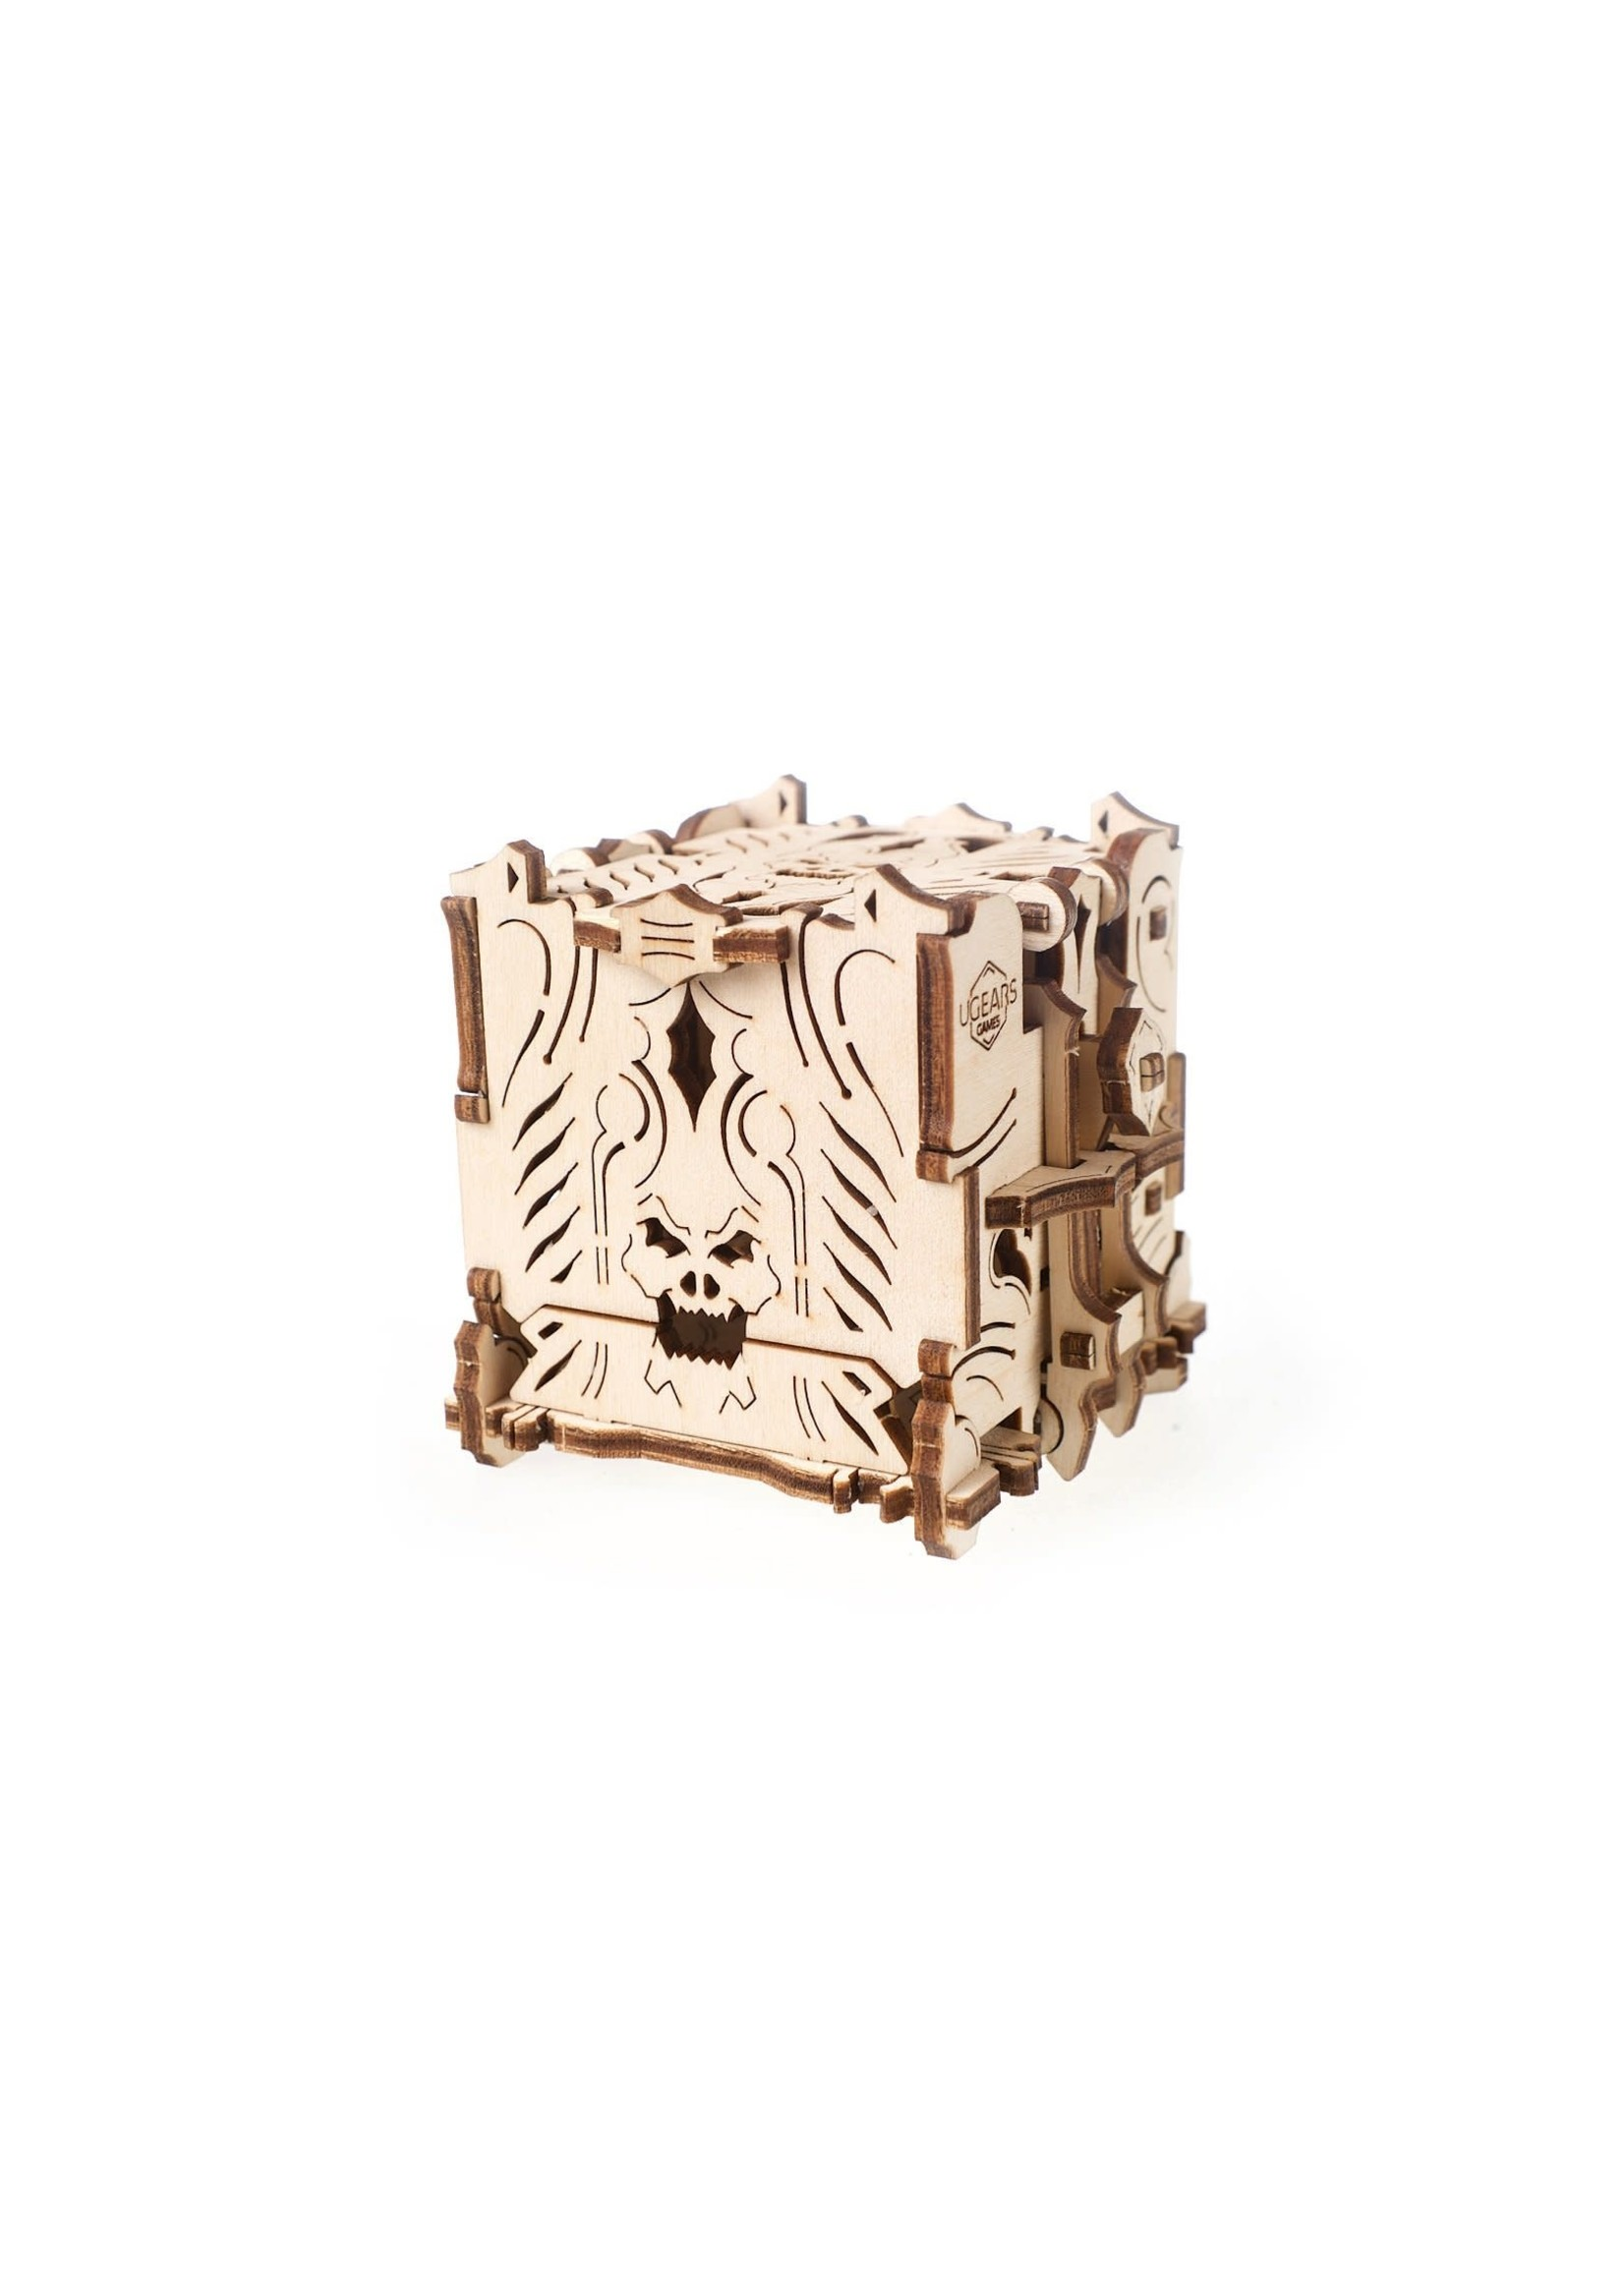 Ugears UGears Games Dice Tower